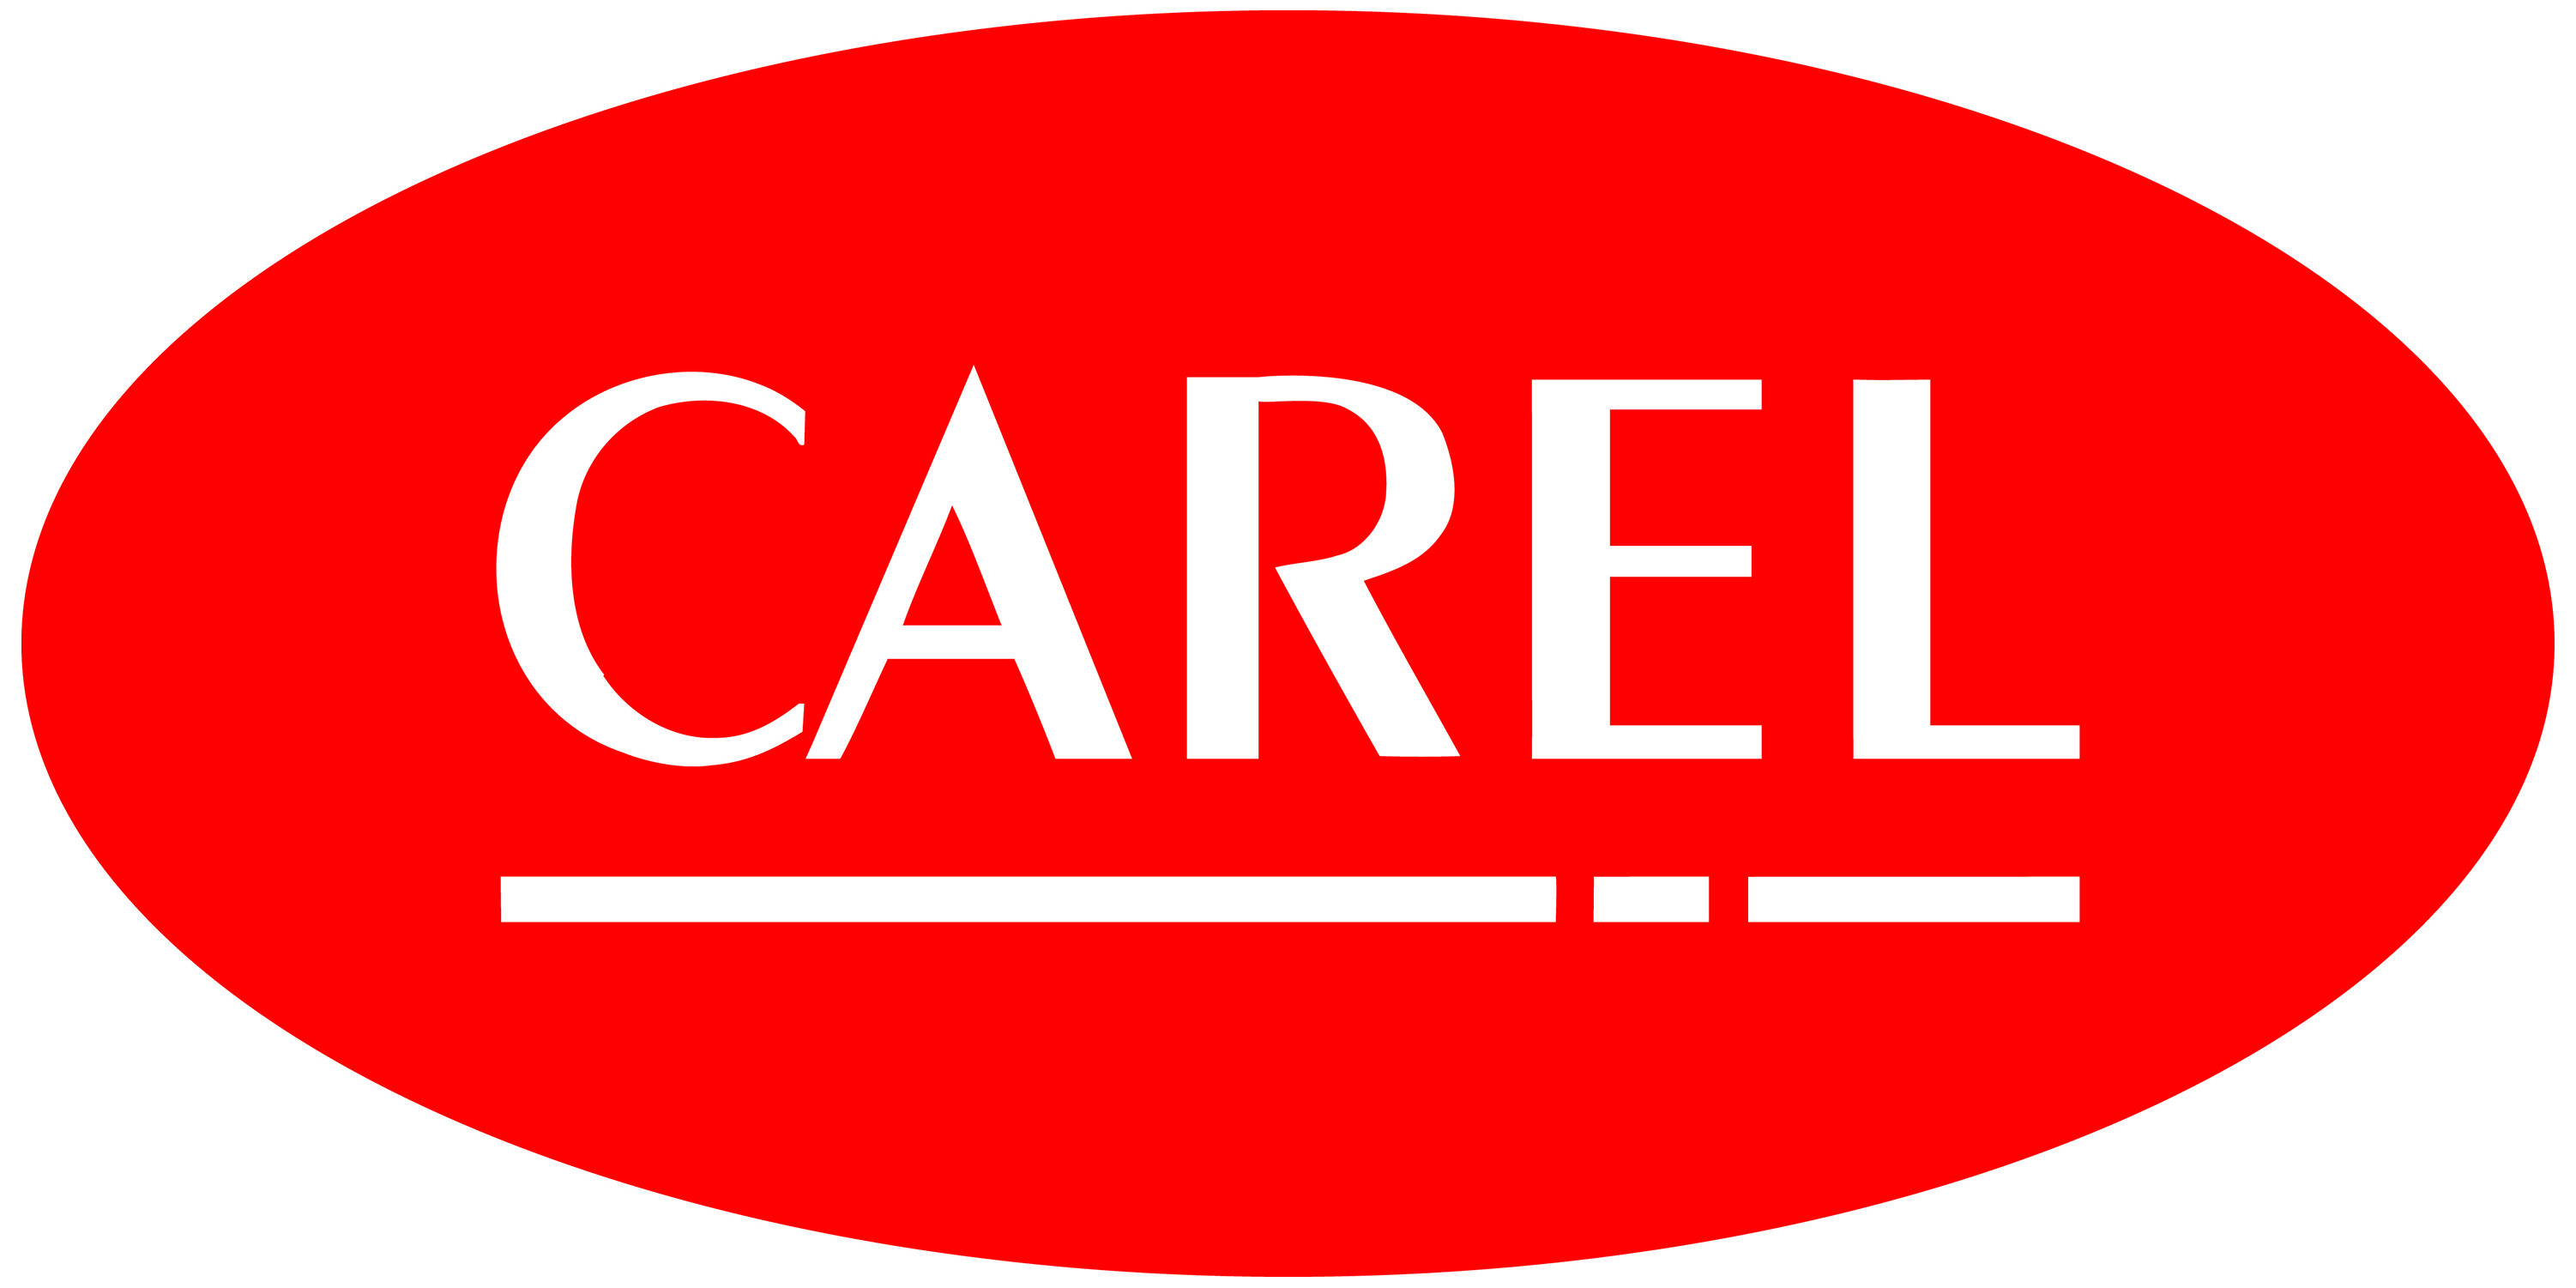 CAREL - Services